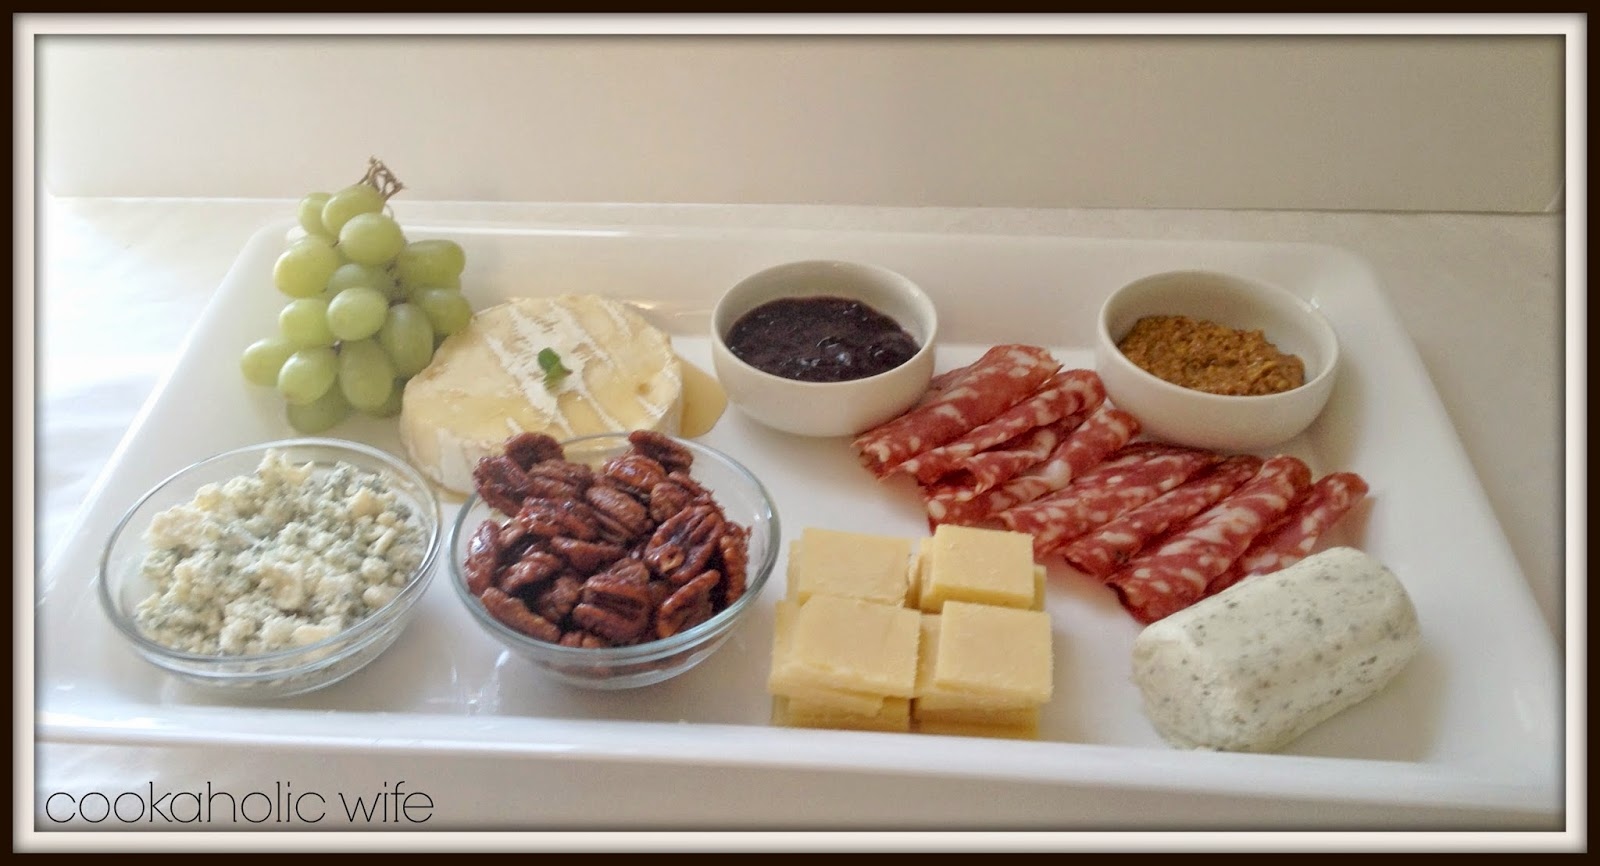 Cheese Plate - Cookaholic Wife